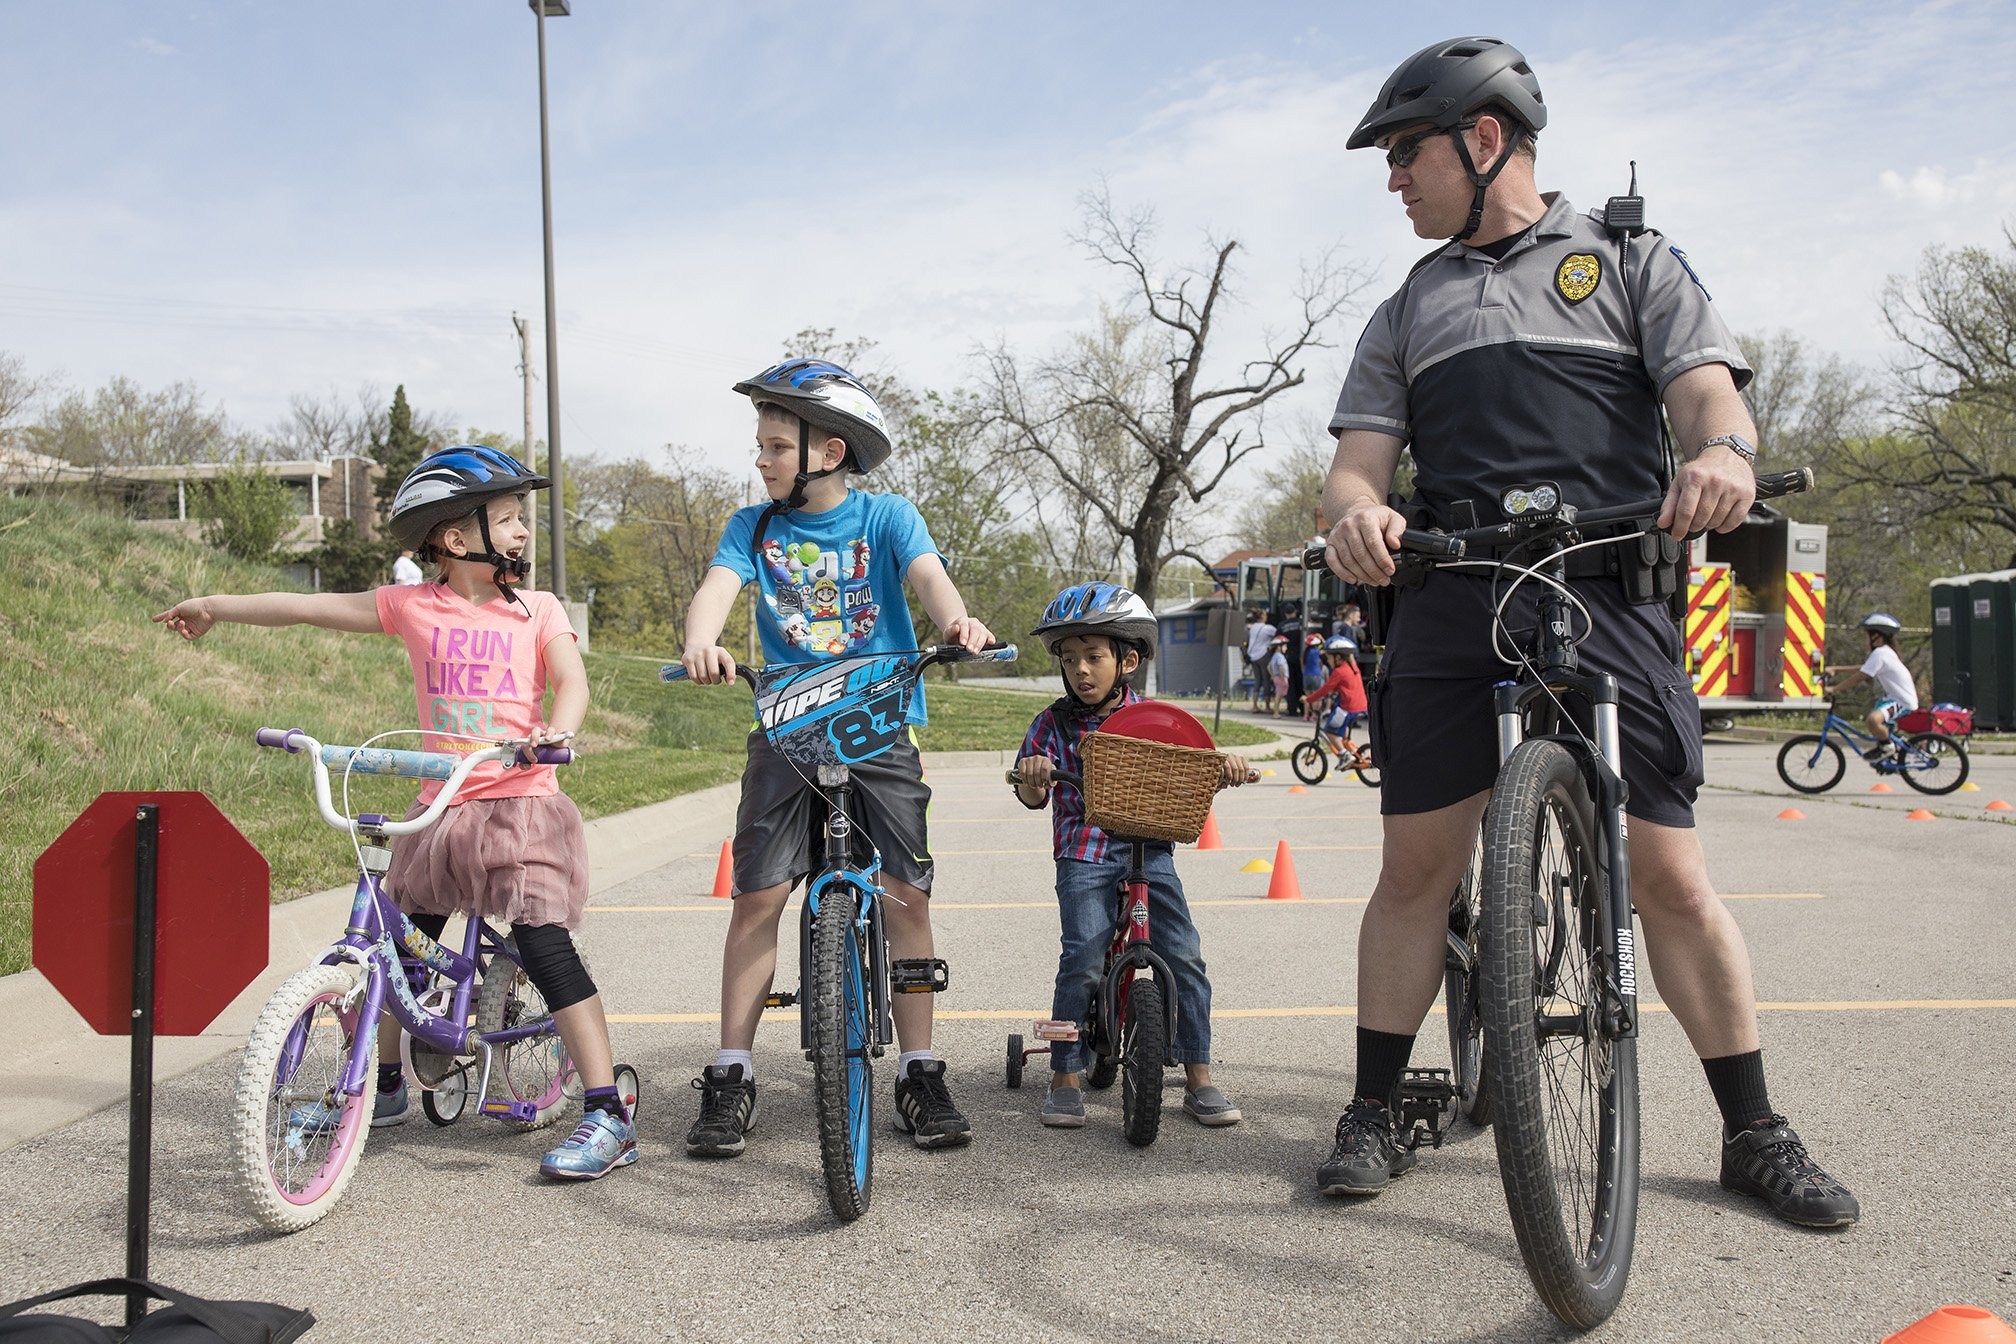 Three children and police officer on bicycles